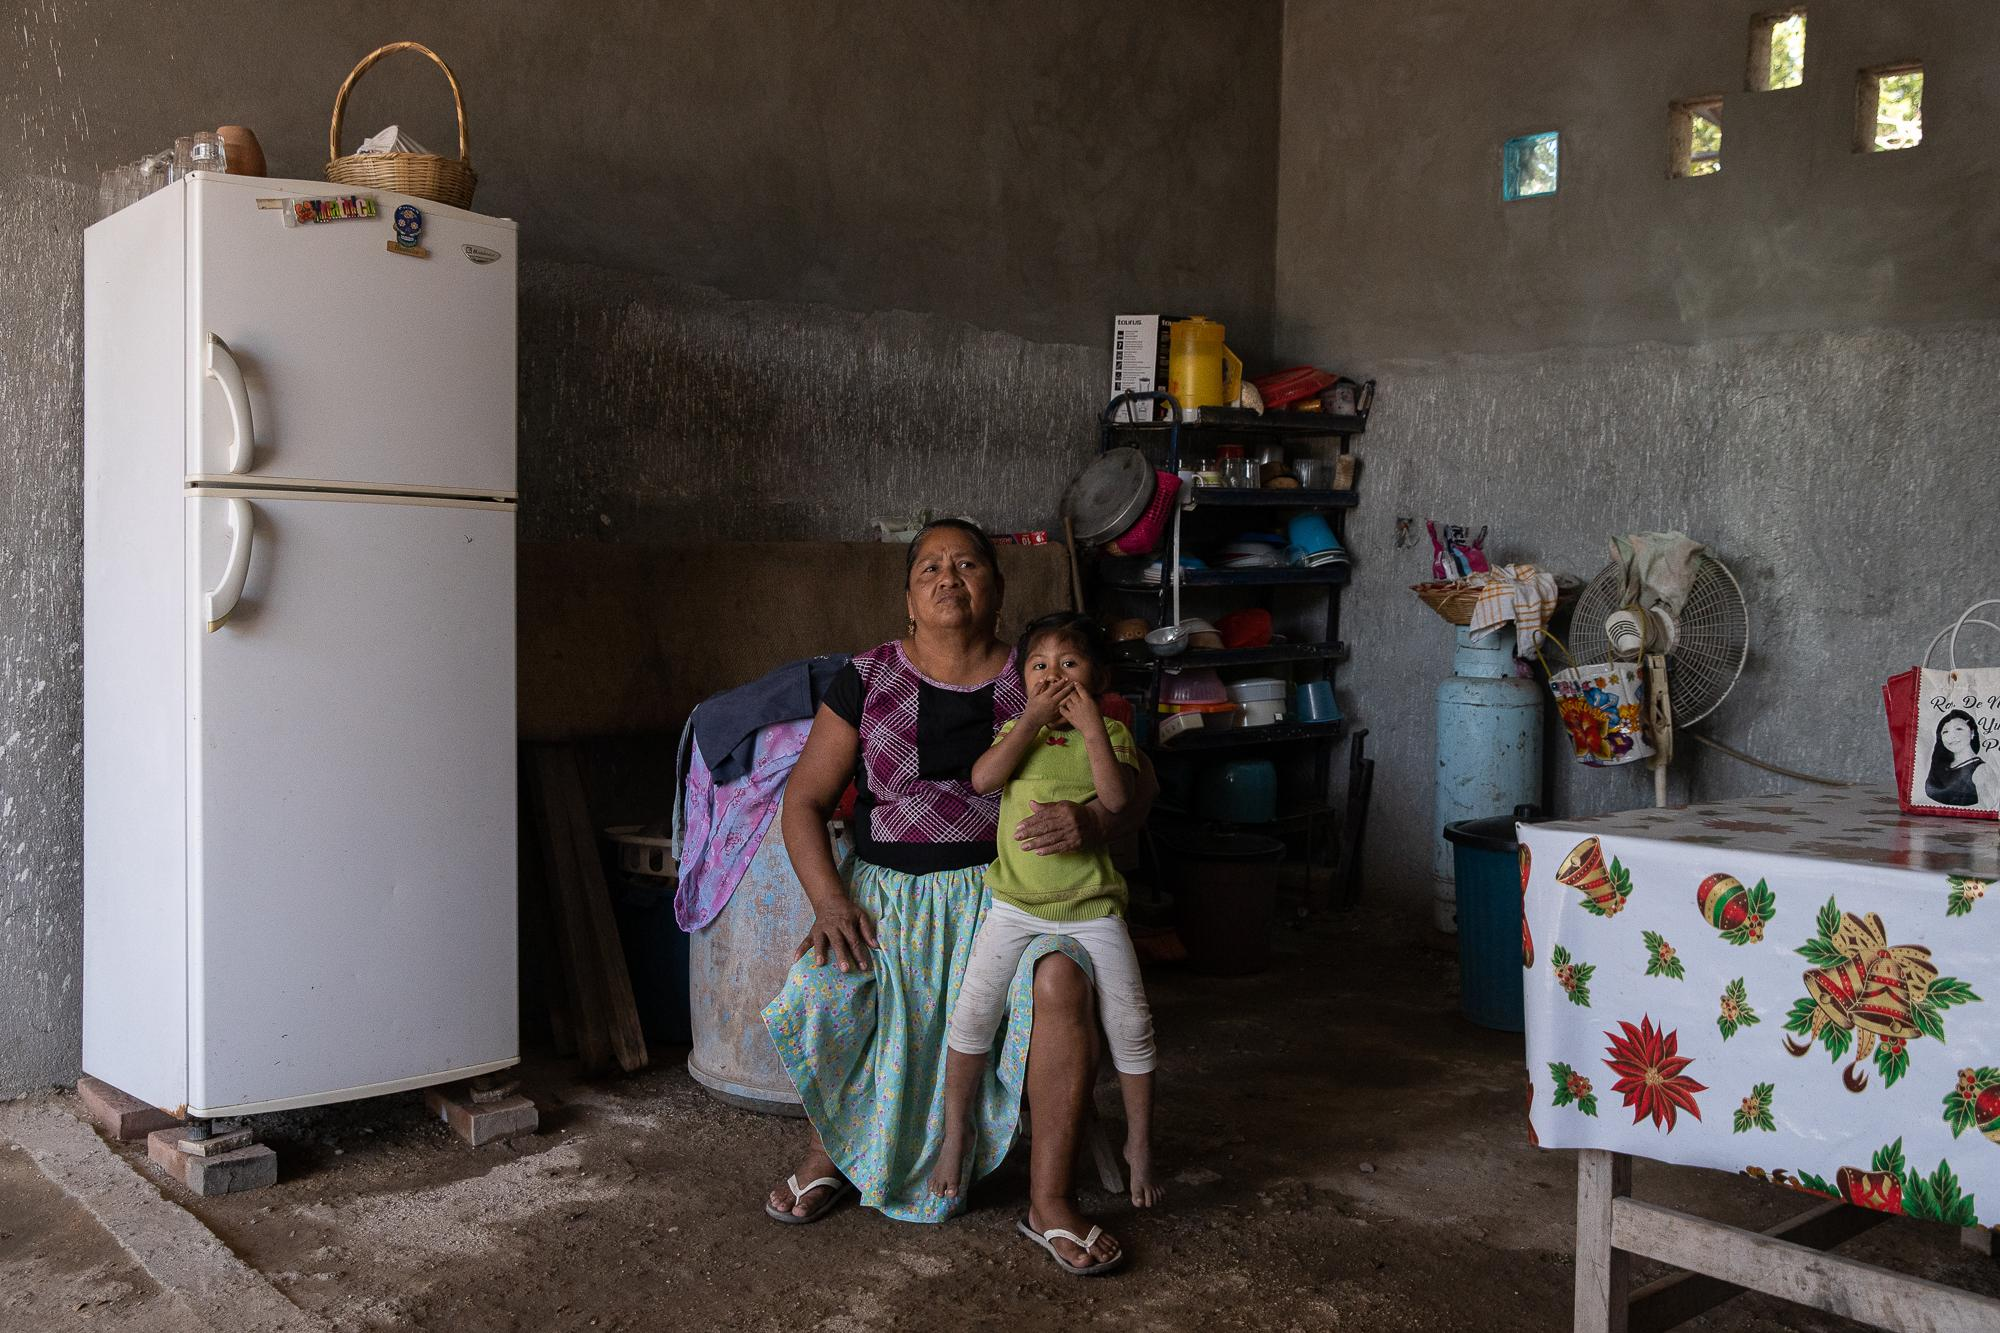 Maria de Jesus Guerra the mother of  Estrella waits for her to get ready while sitting in their kitchen.  Many muxe have been known to care for their ageing parents, some even say it's a blessing to have a muxe son so they can help out at home.